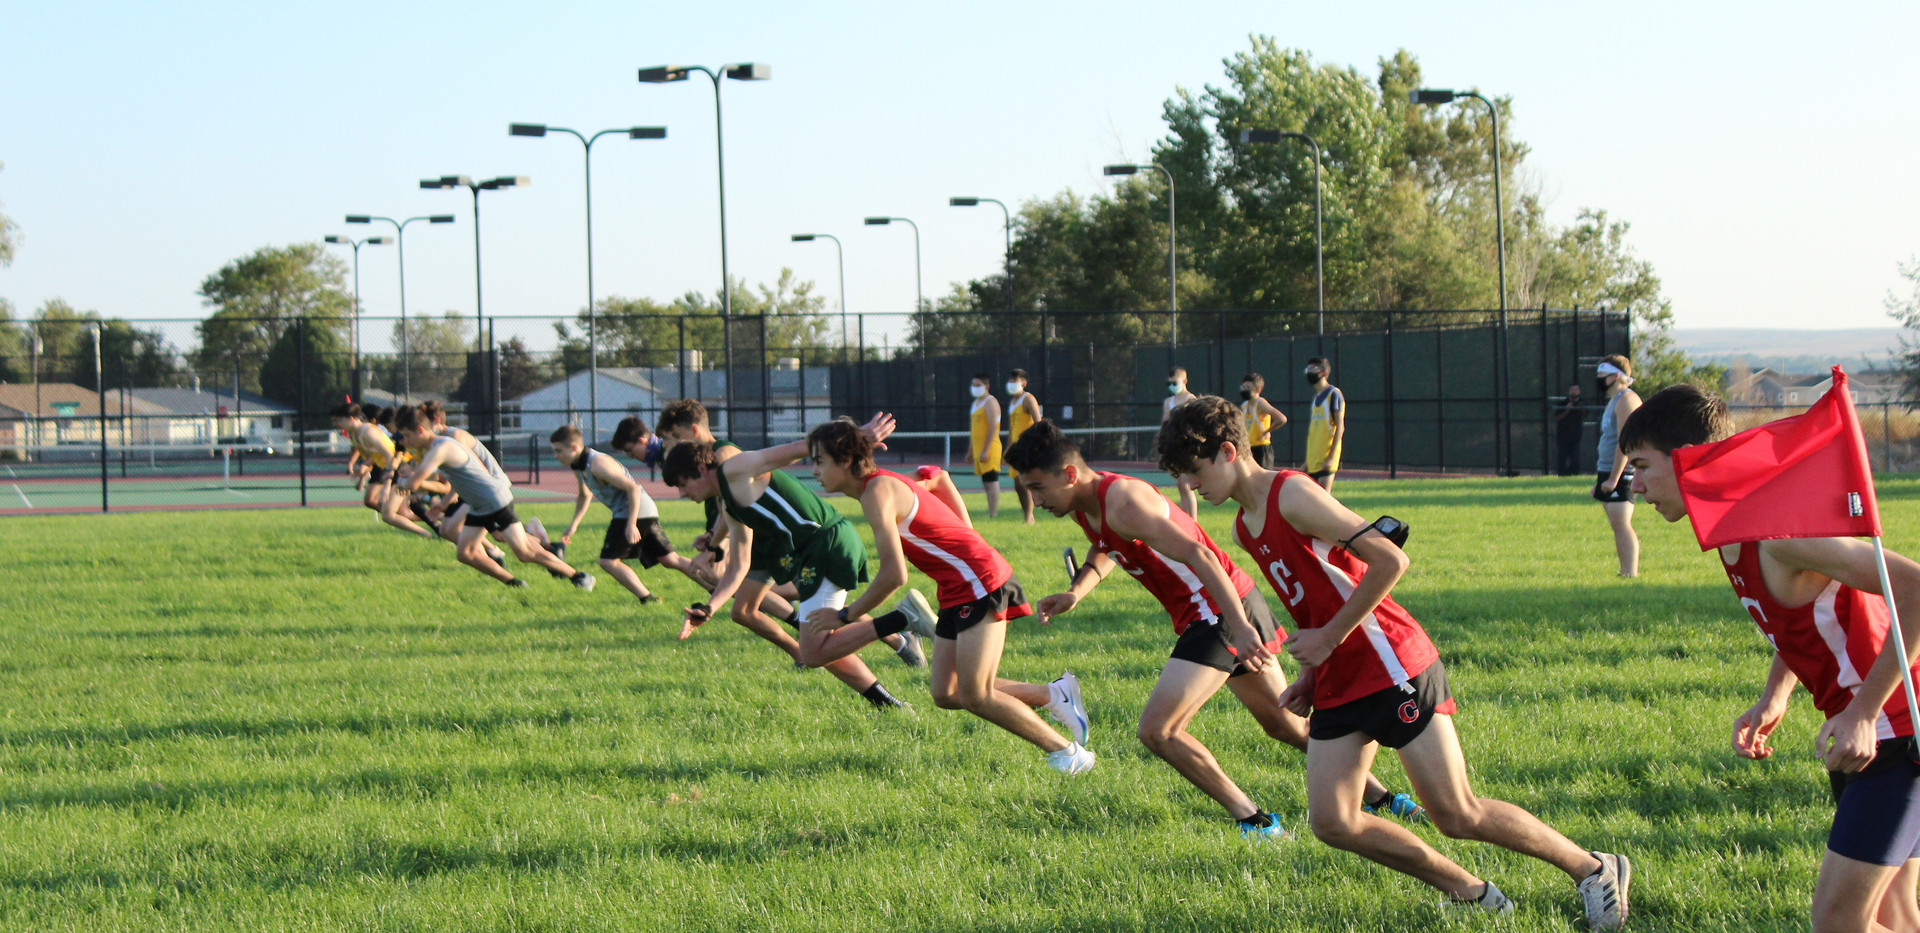 Runners in the first heat of the boy's r